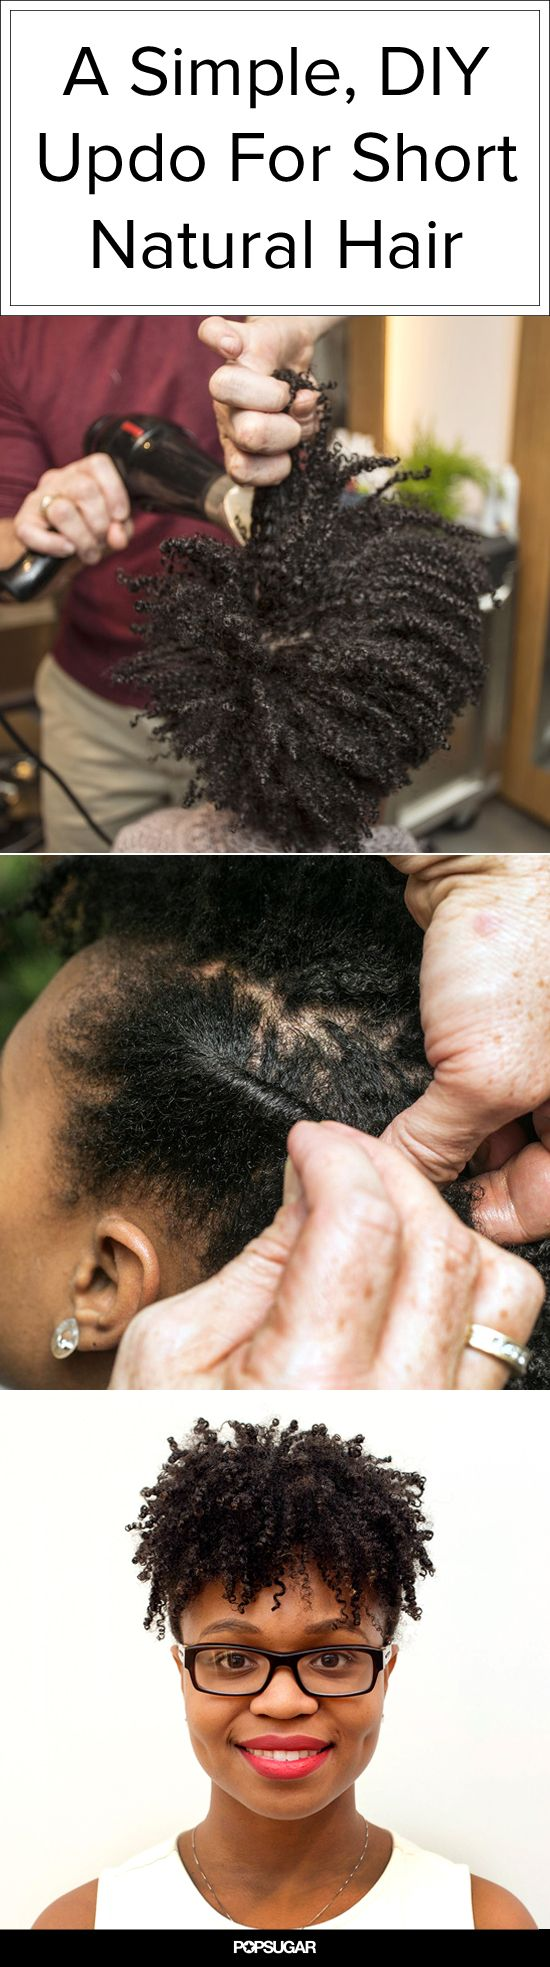 A Simple, DIY Updo That Works on Short Natural Hair